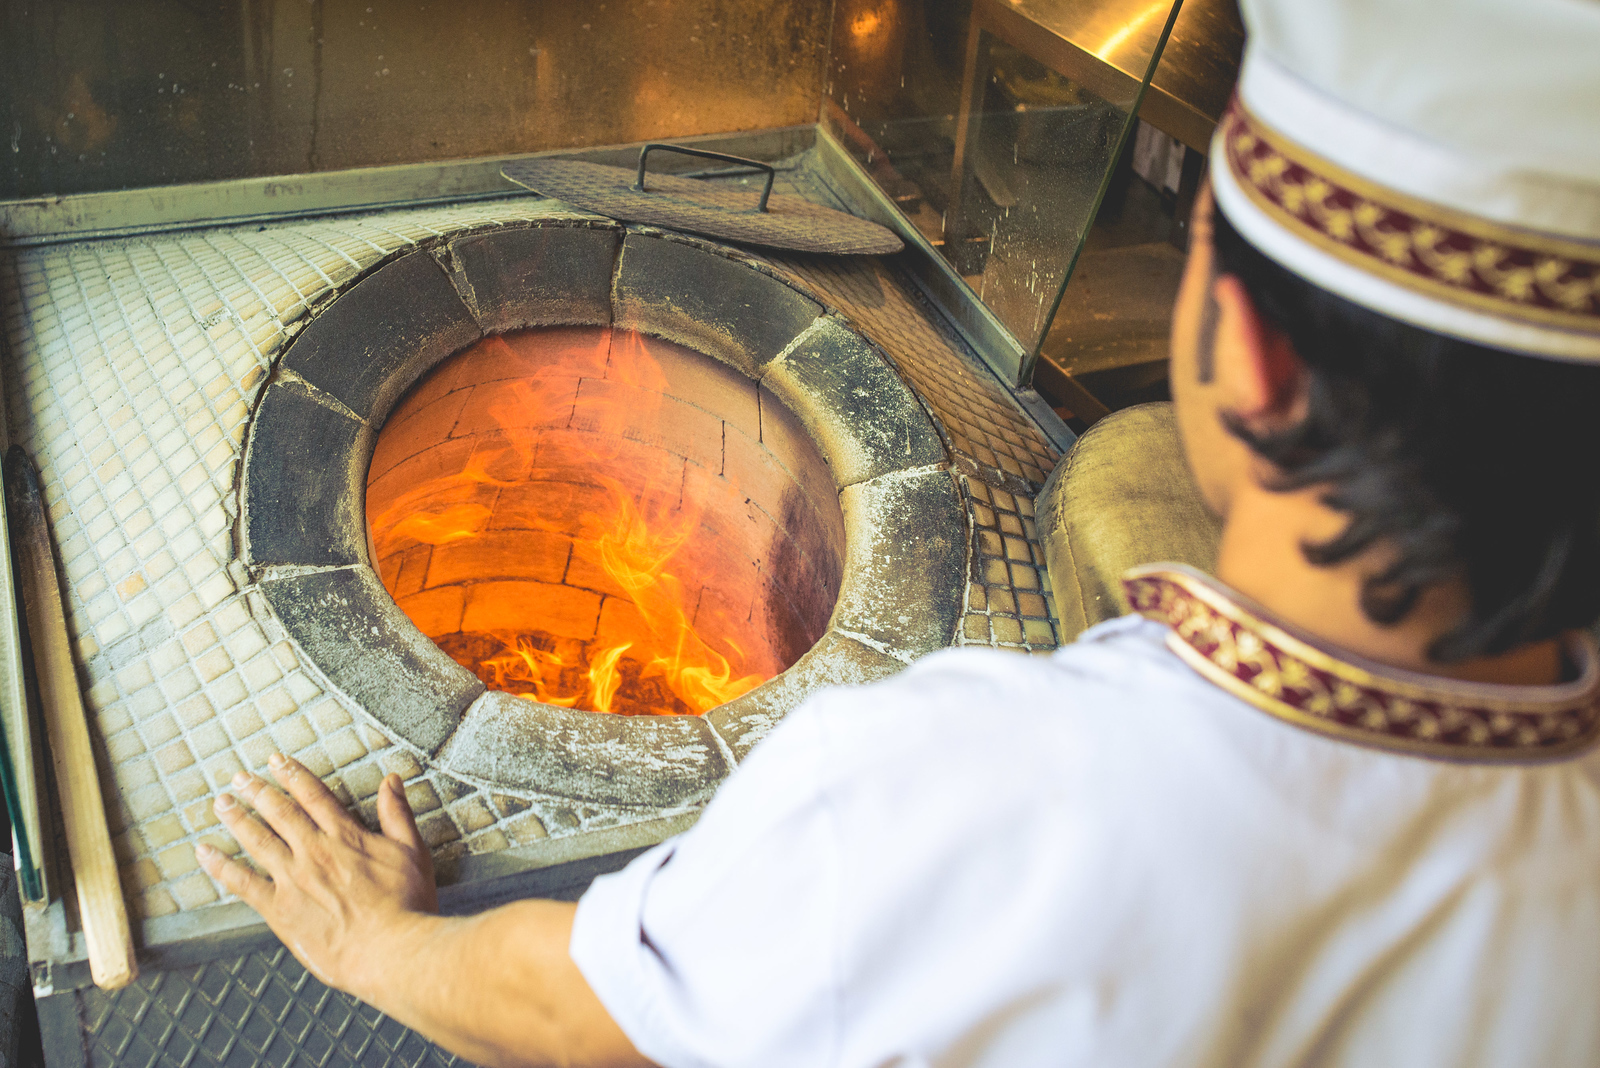 A bread maker peers into the fiery oven before throwing Turkish flat bread on the brick.